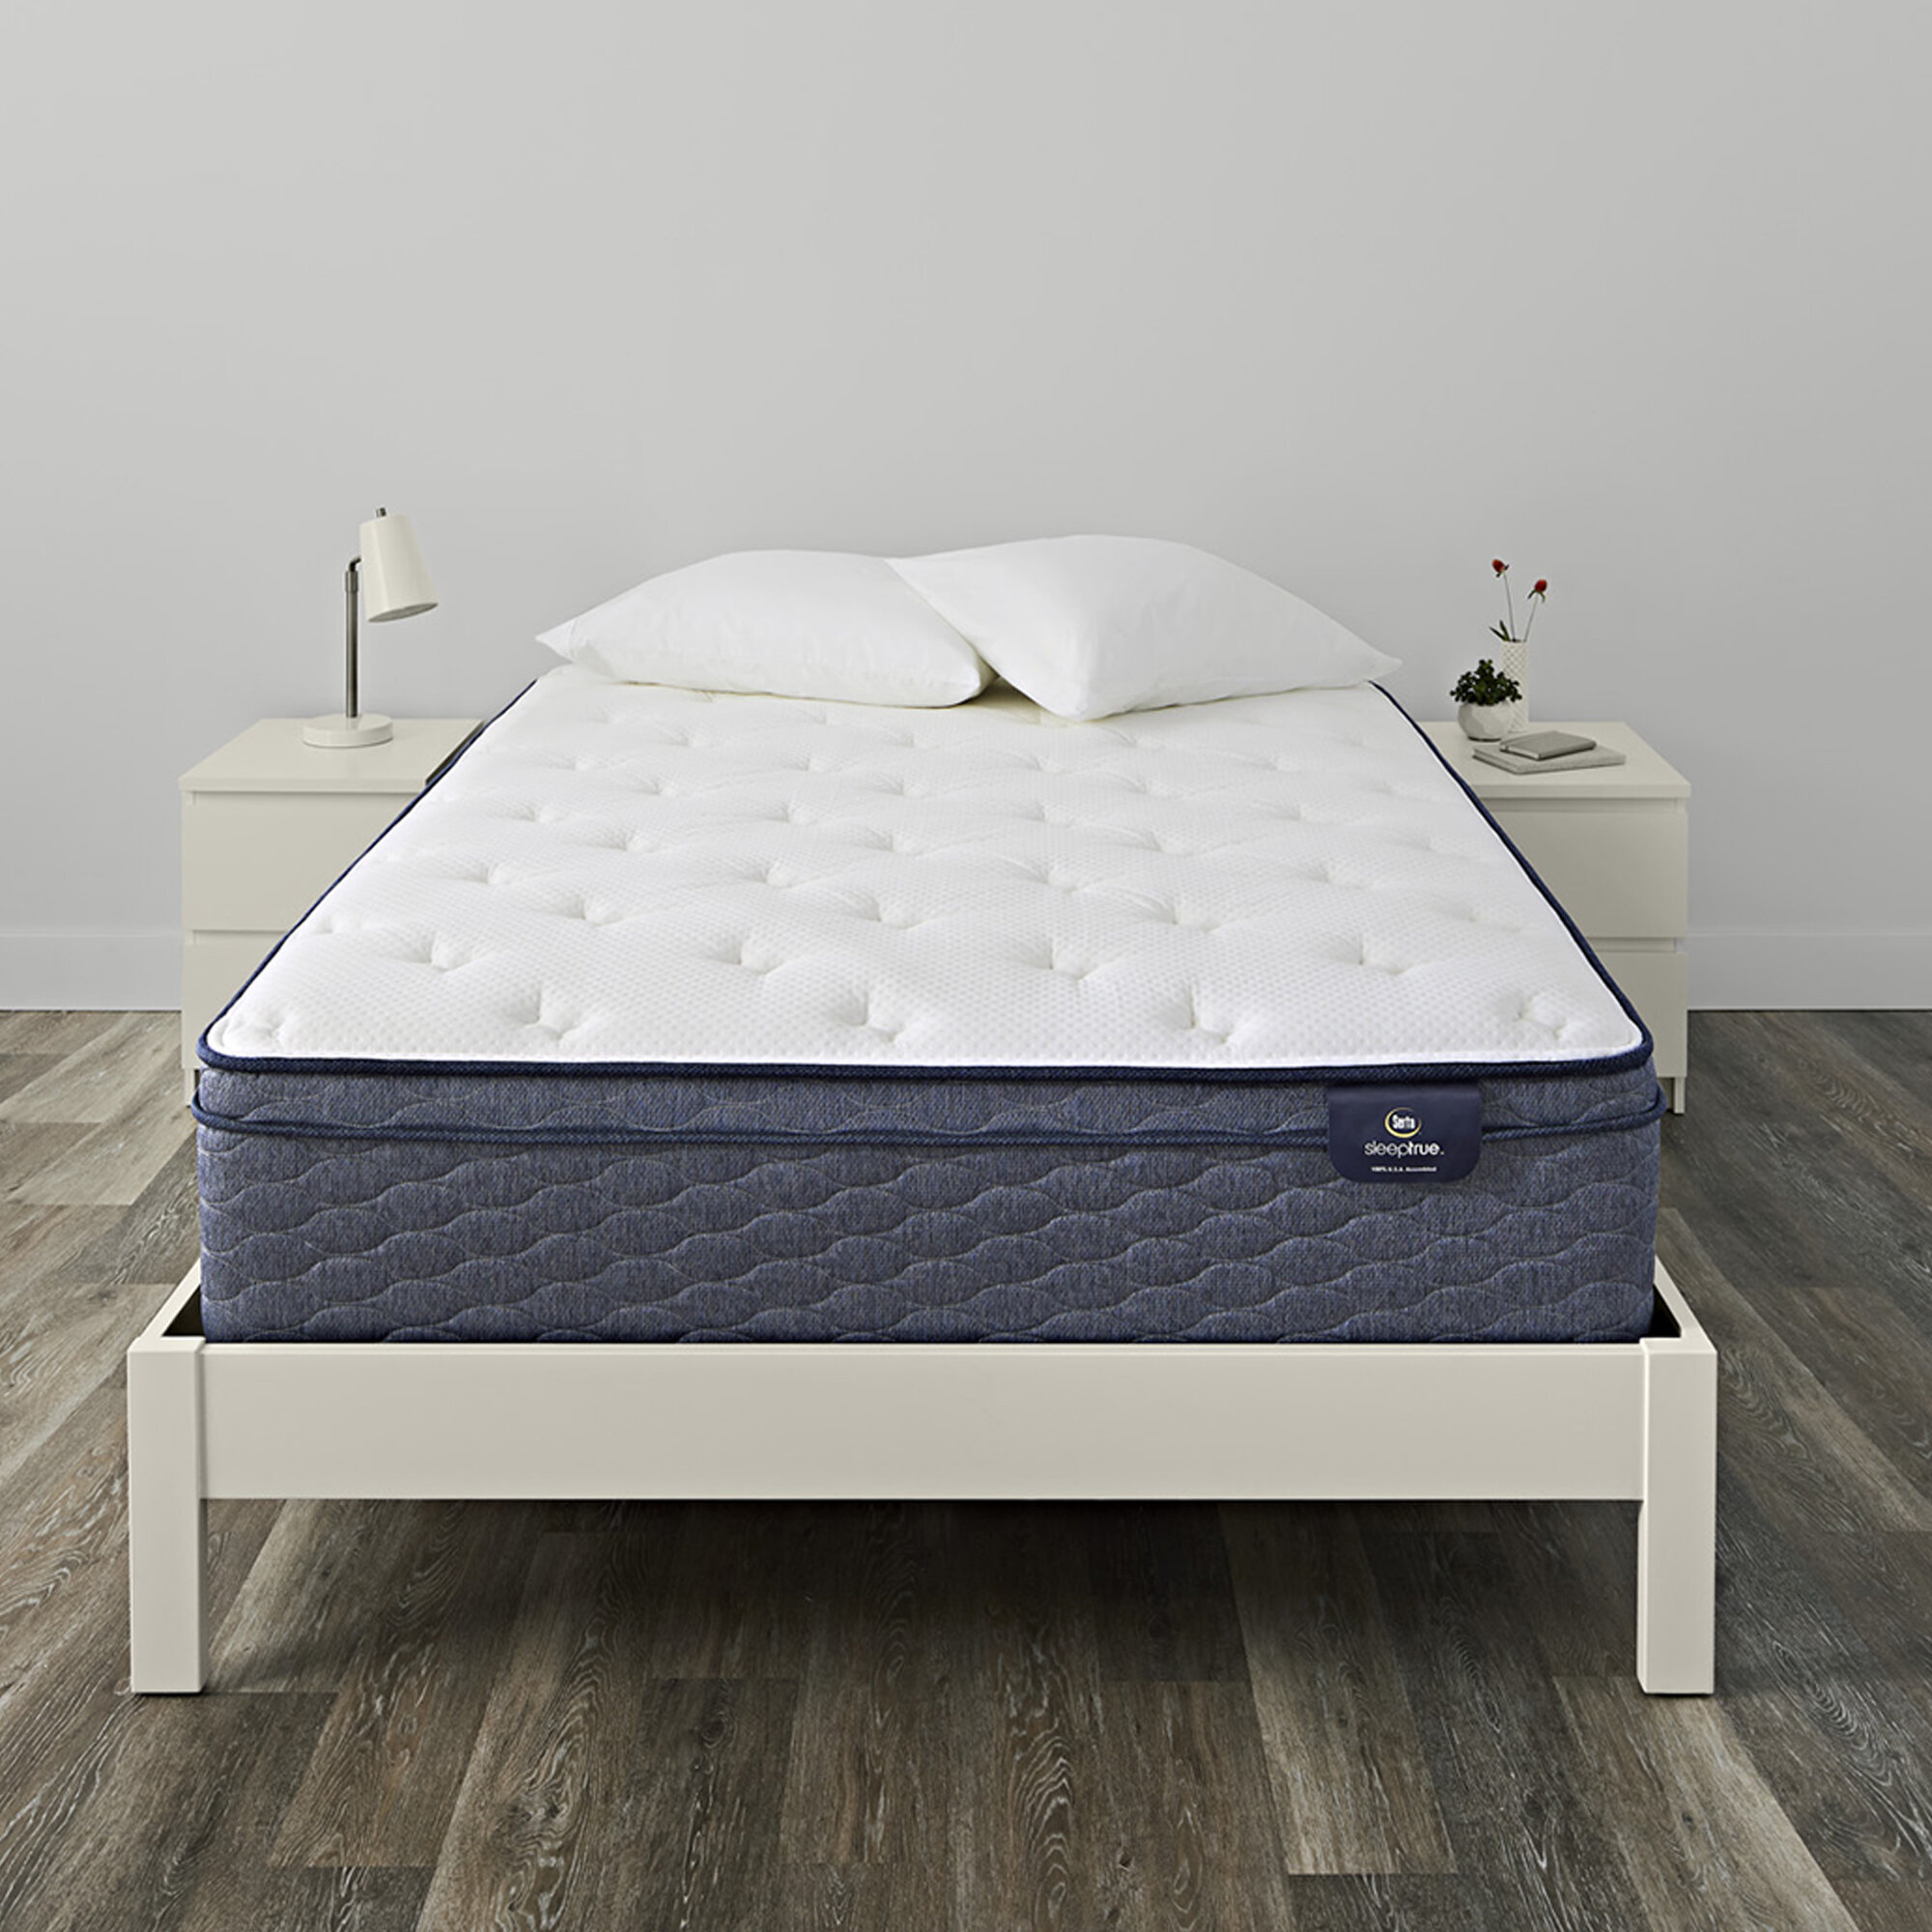 Serta Sleeptrue 13 Plush Pillow Top Hybrid Mattress Reviews Wayfair